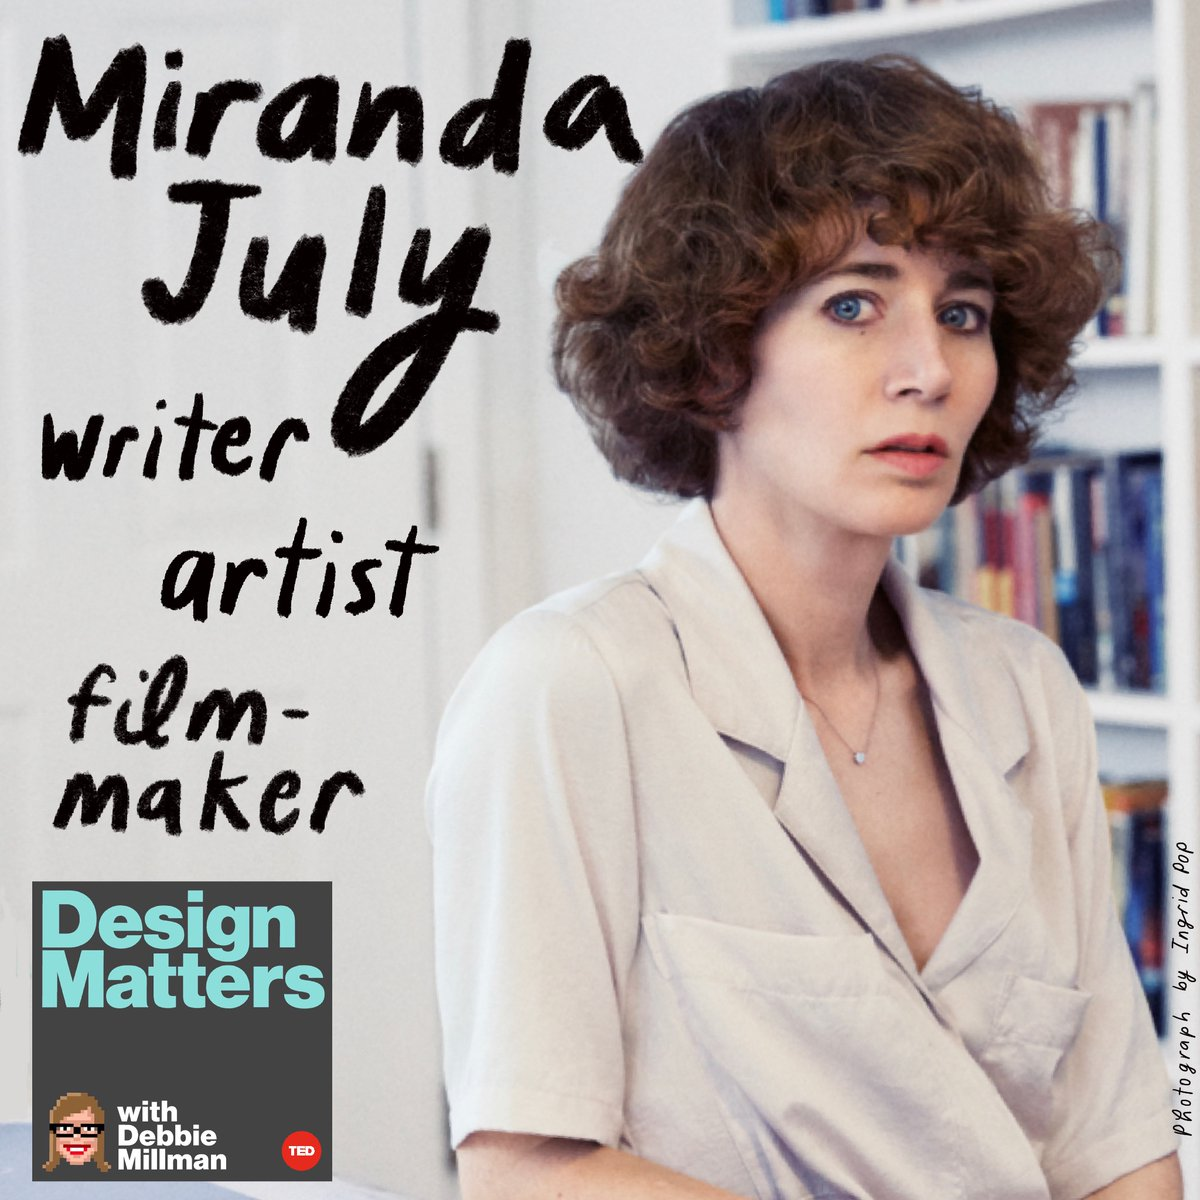 On the new Design Matters—now hosted on TED Podcasts!—writer, director and actress @Miranda_July discusses the surreality of releasing a surreal movie in an even more surreal time … and the eternal magic of kissing, cakes and clothes. Listen now! https://t.co/lMeocb8pc5 https://t.co/B1XnaAM2yQ